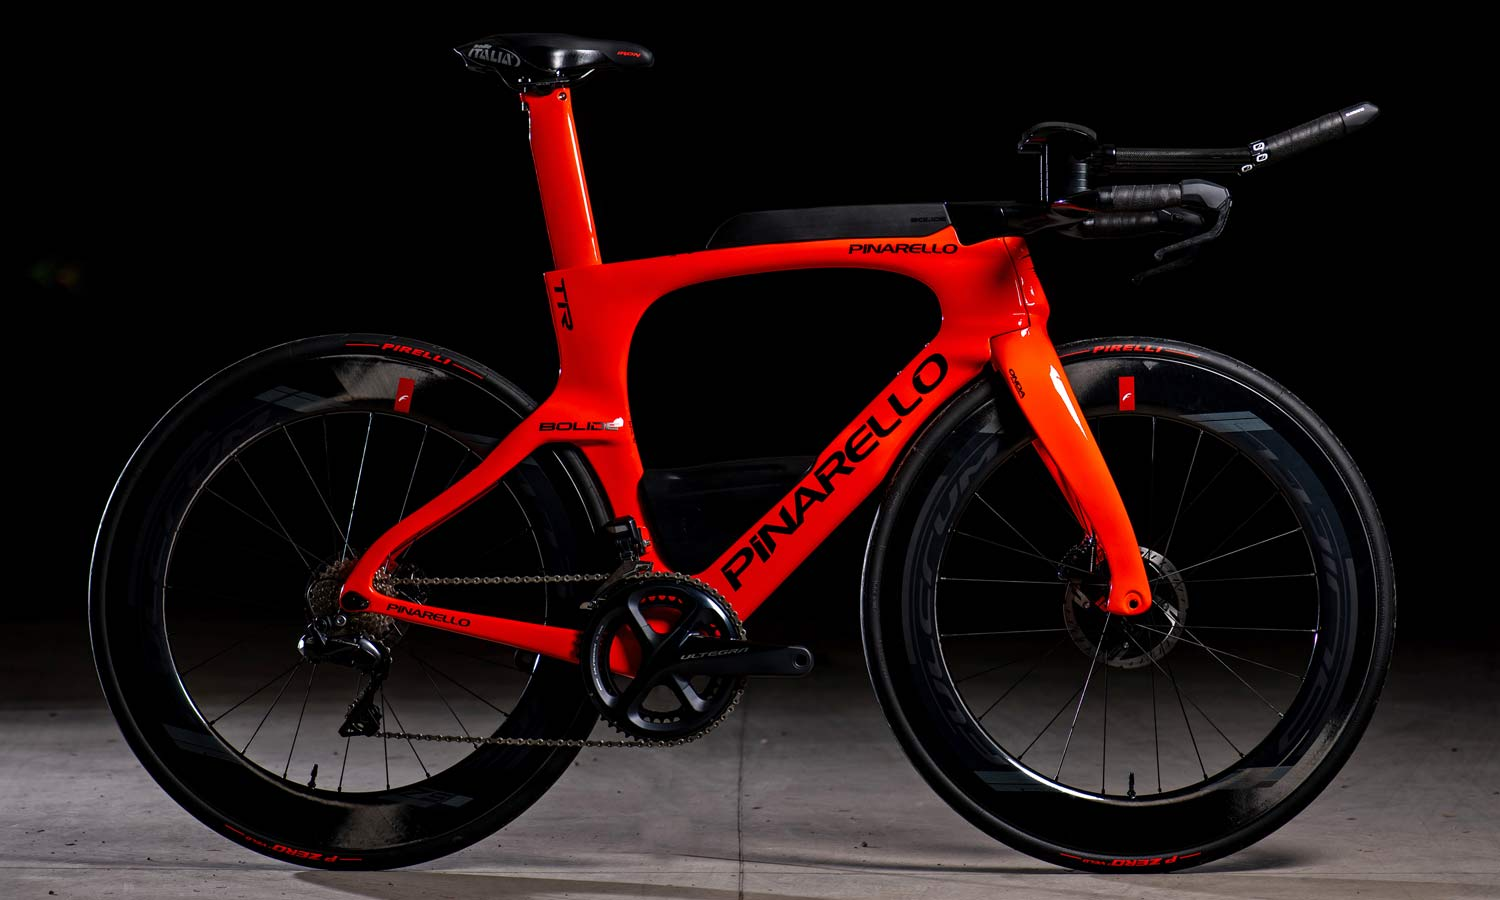 Fulcrum-Wind-75-DB-deep-aero-carbon-triathlon-wheels_photo-by-Luigi-Sestili-Pinarello-Bolide-TTR.jpg